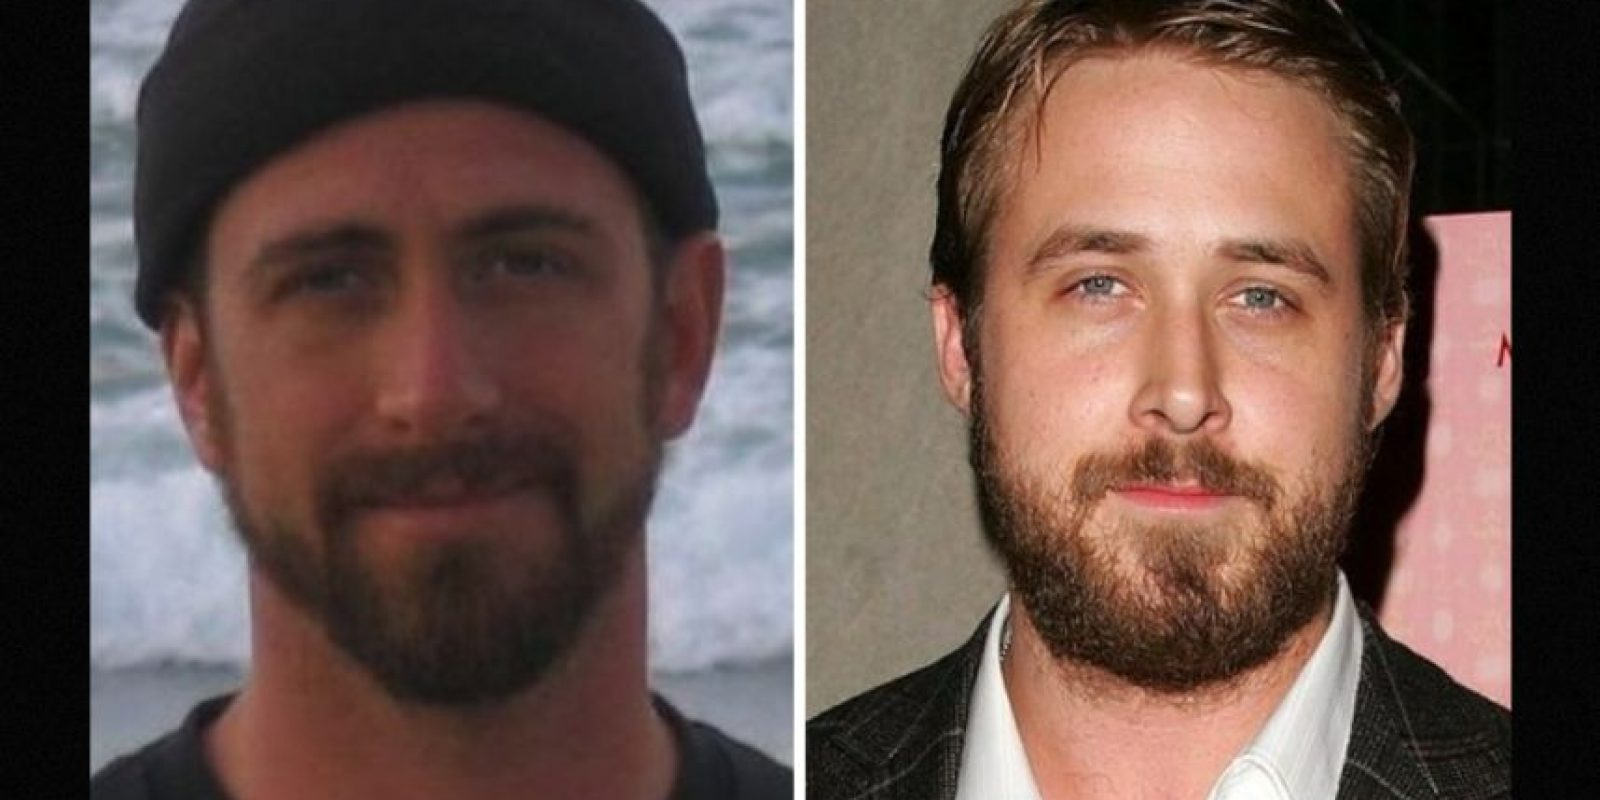 Igual a Ryan Gosling Foto: Reddit/Getty